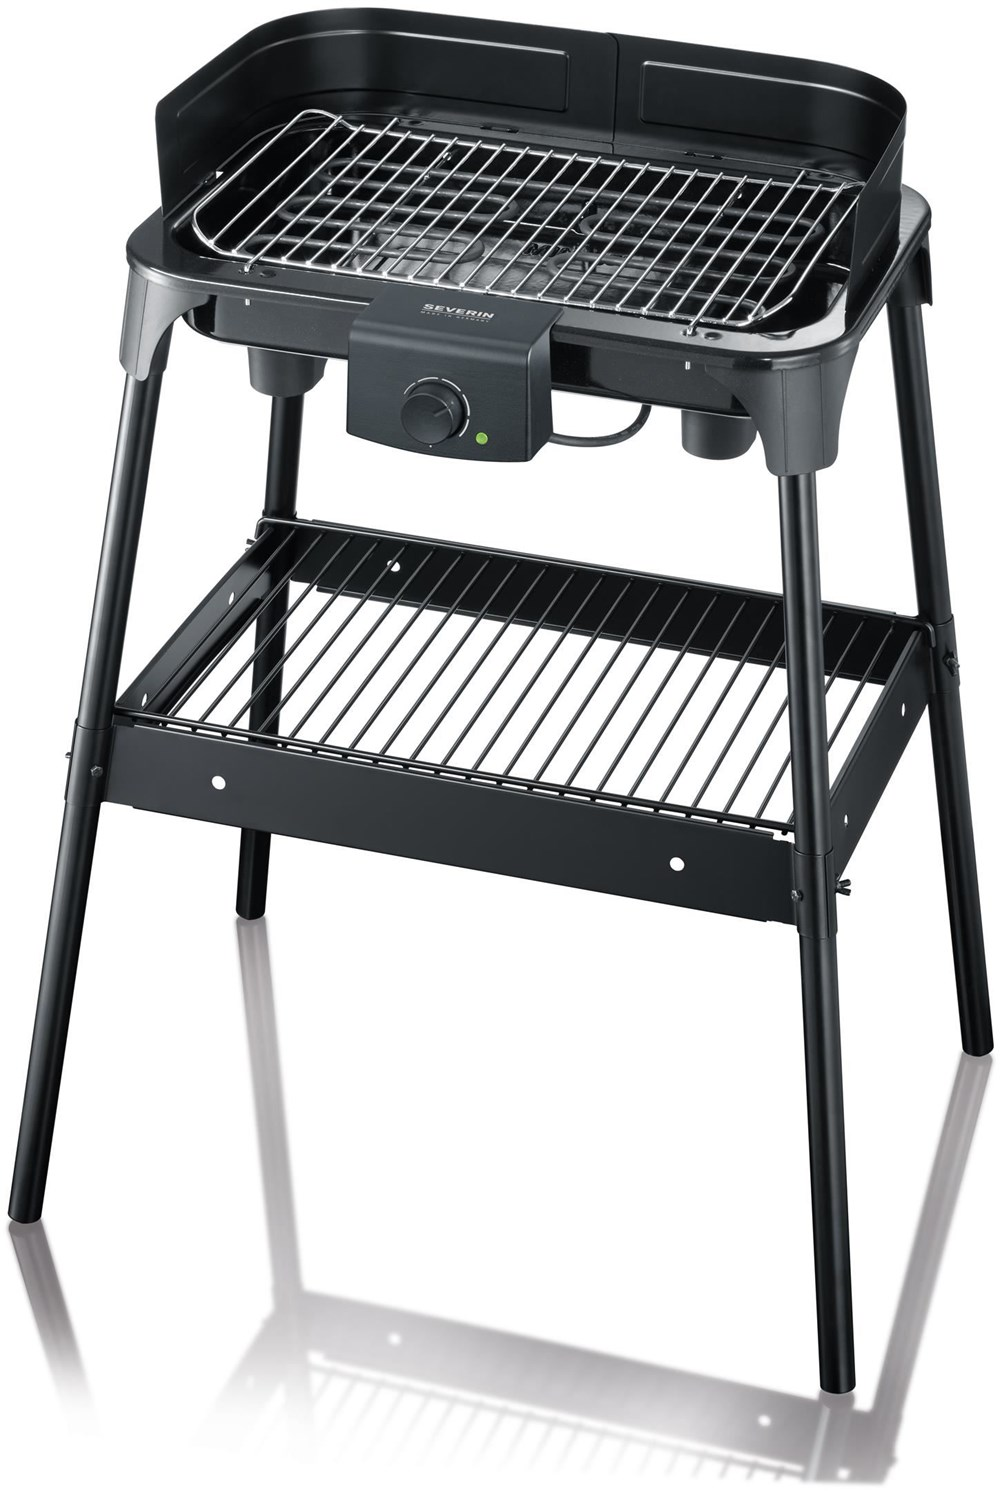 severin pg8532 barbecue grill schwarz grills computeruniverse. Black Bedroom Furniture Sets. Home Design Ideas